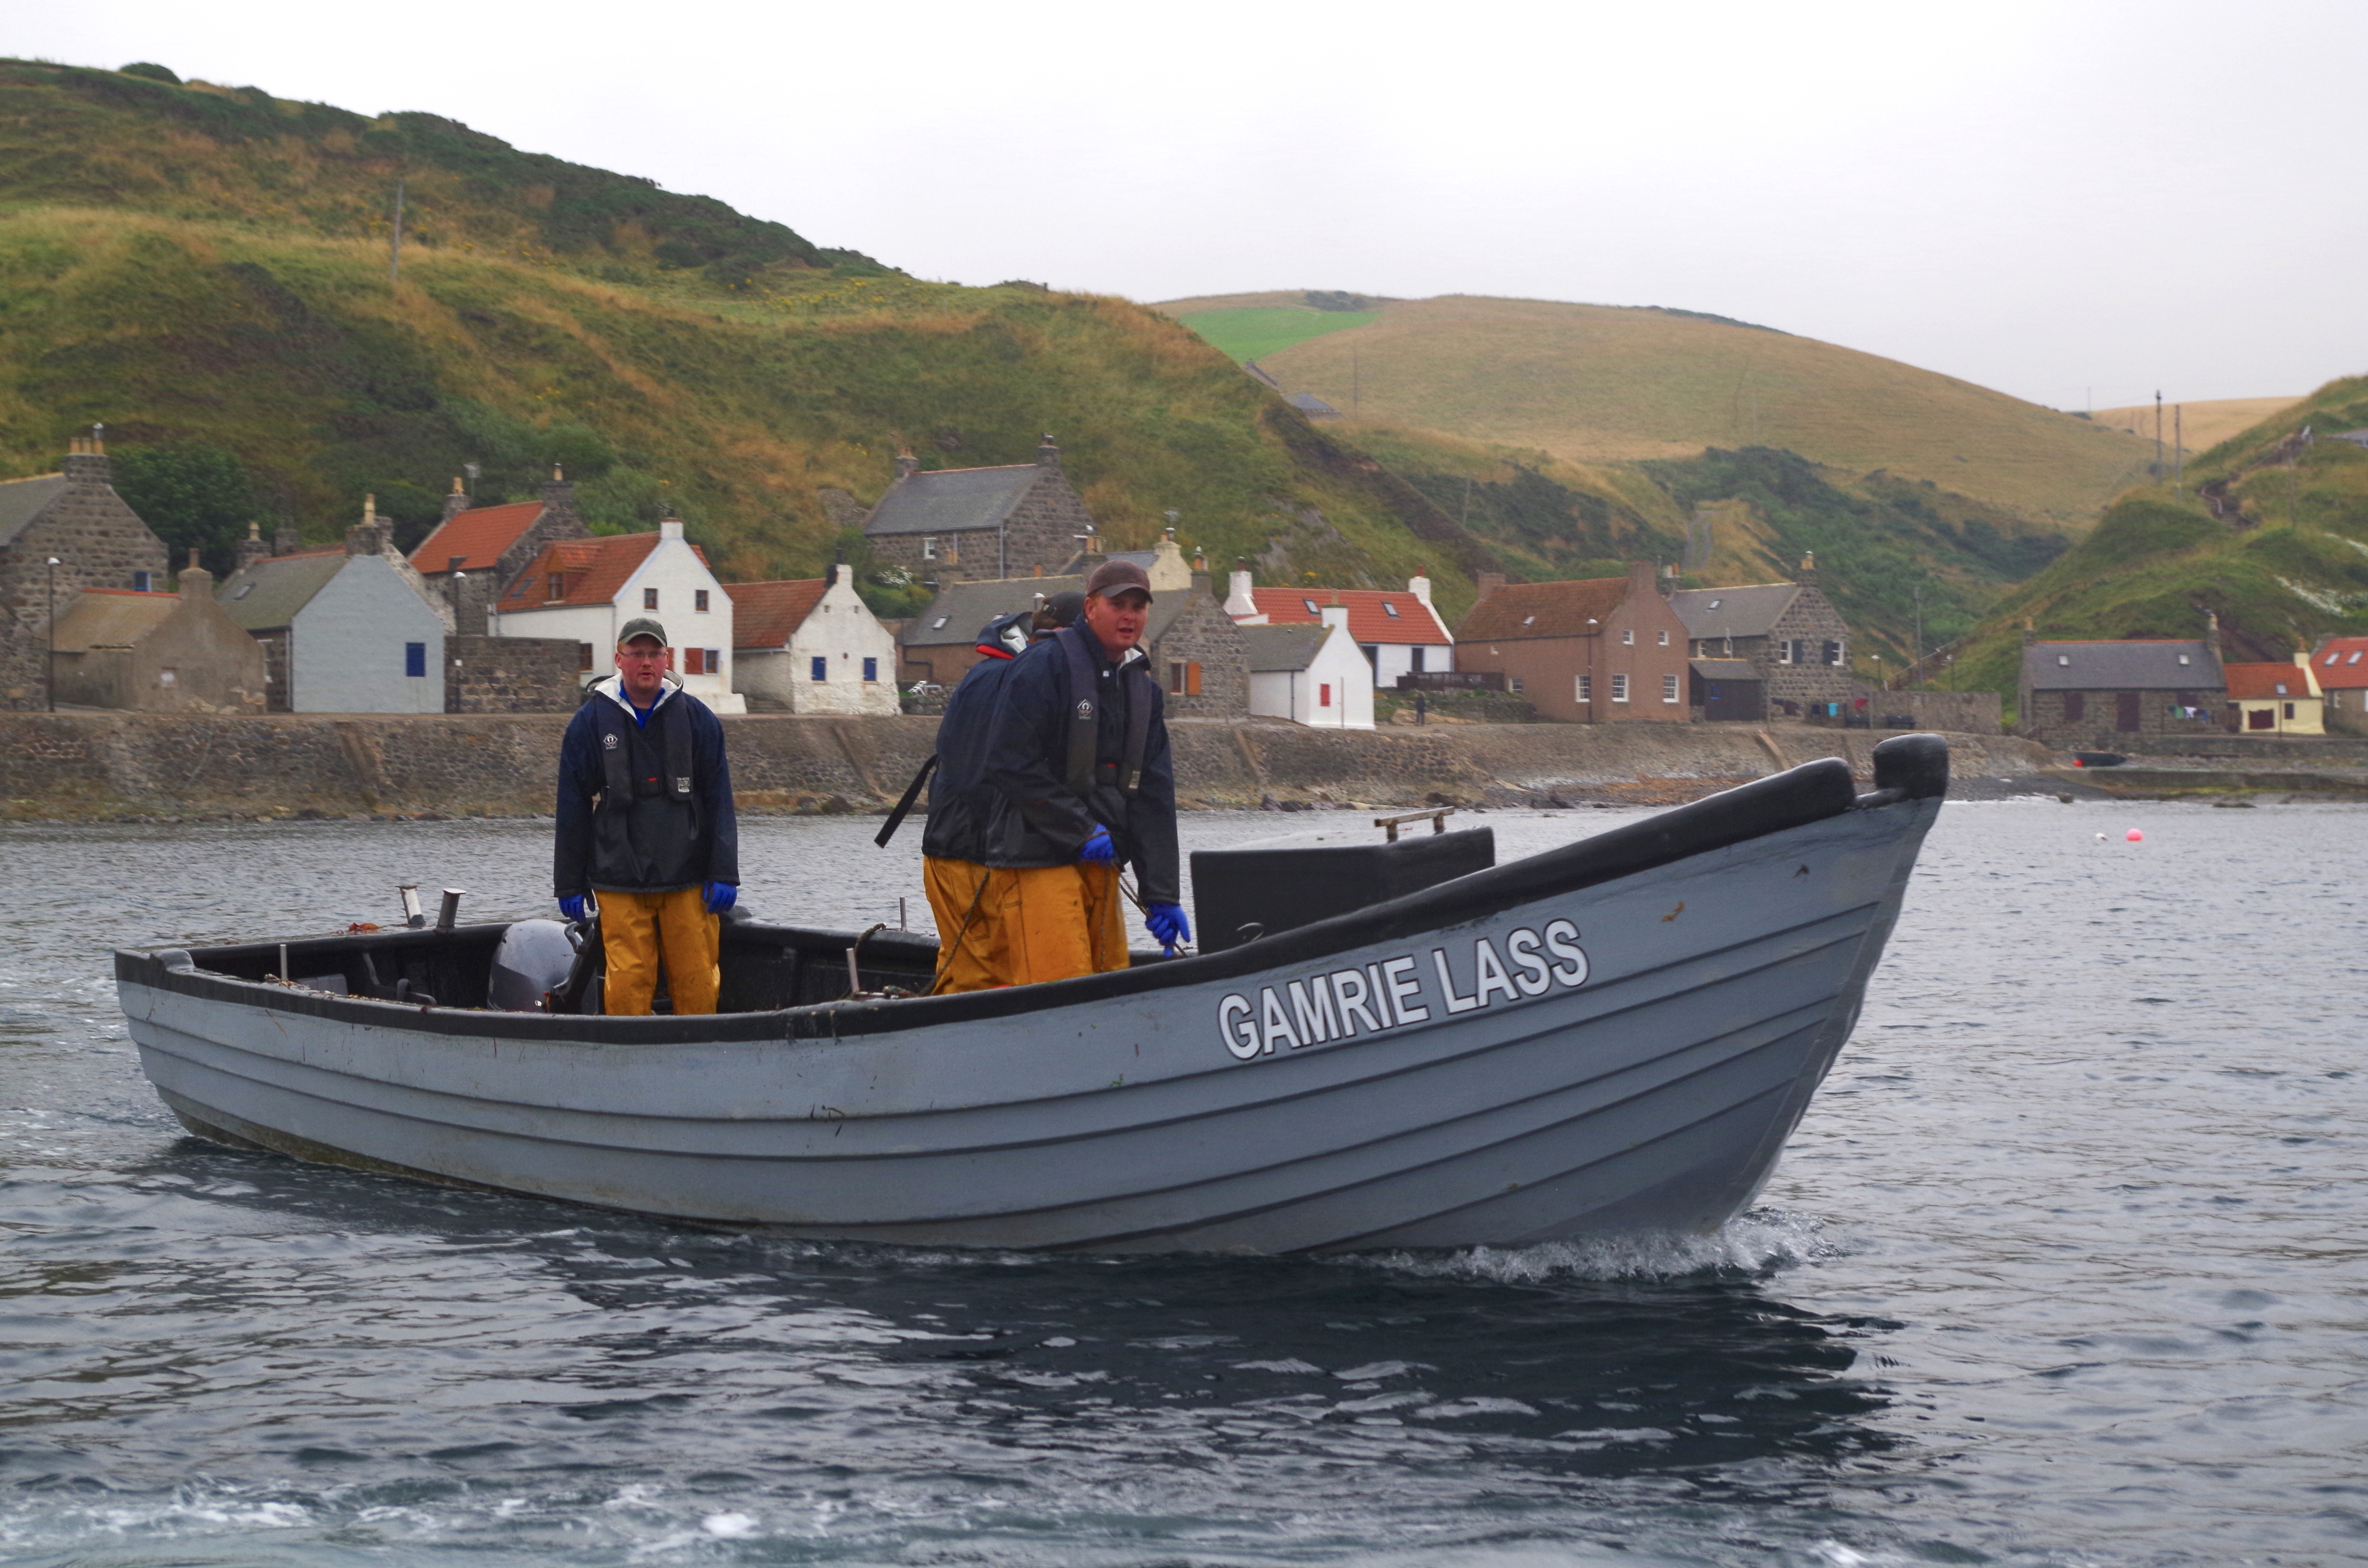 Brothers Kevin Pullar (left) and John Pullar (right) on Gamrie Lass.